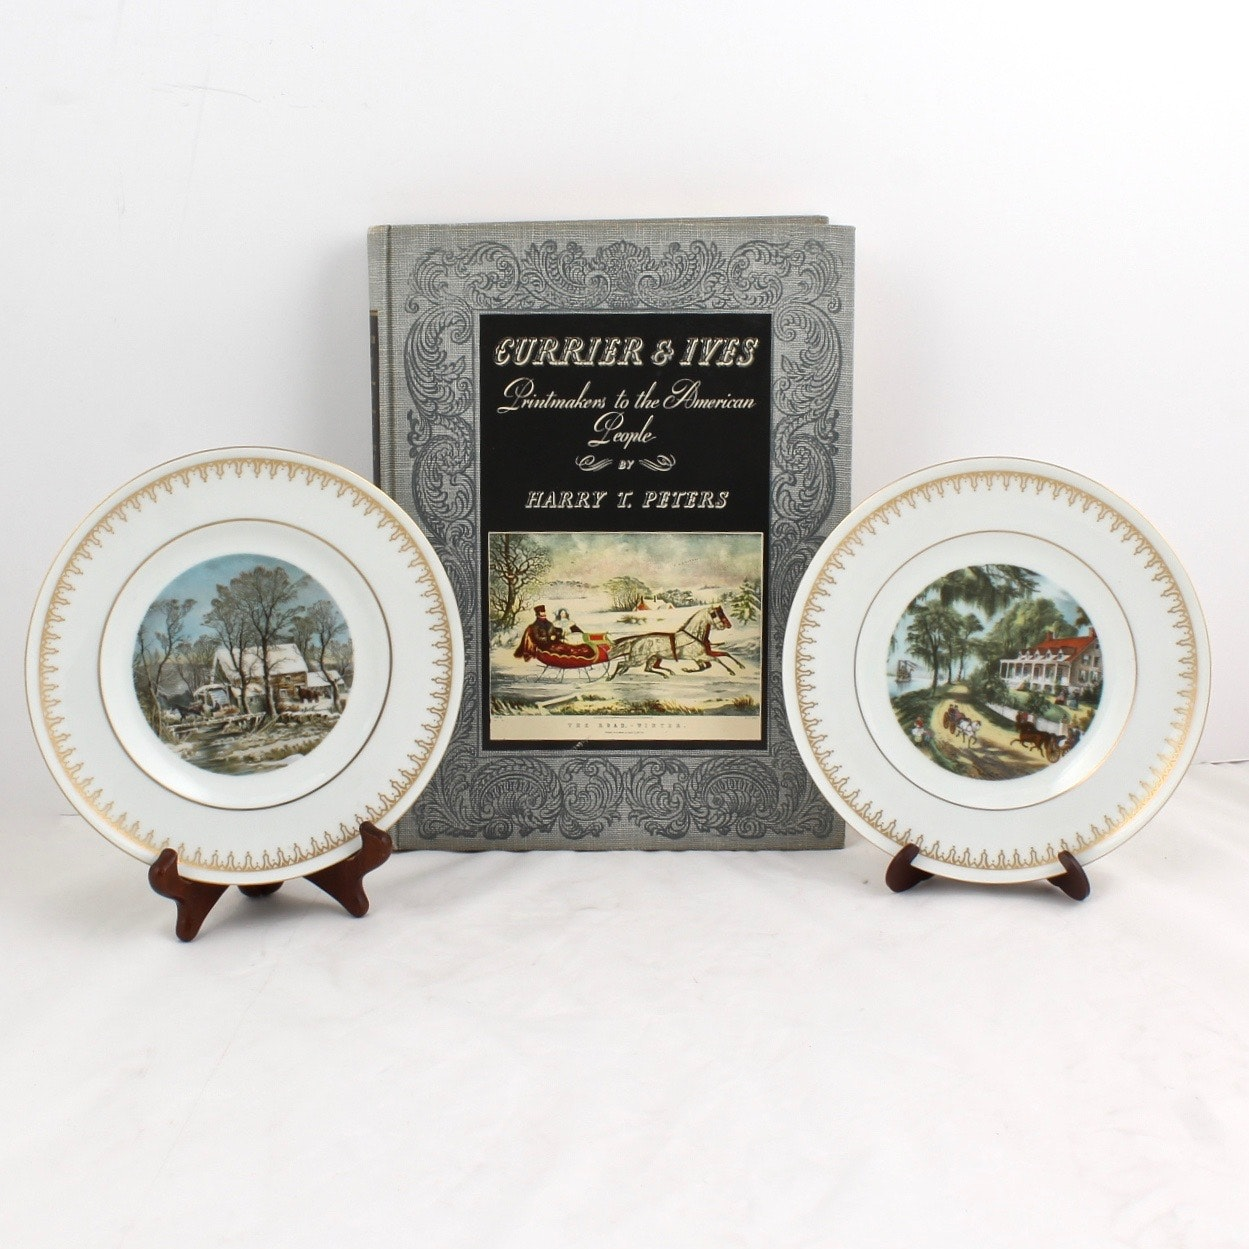 Currier & Ives Collector Plates and Book